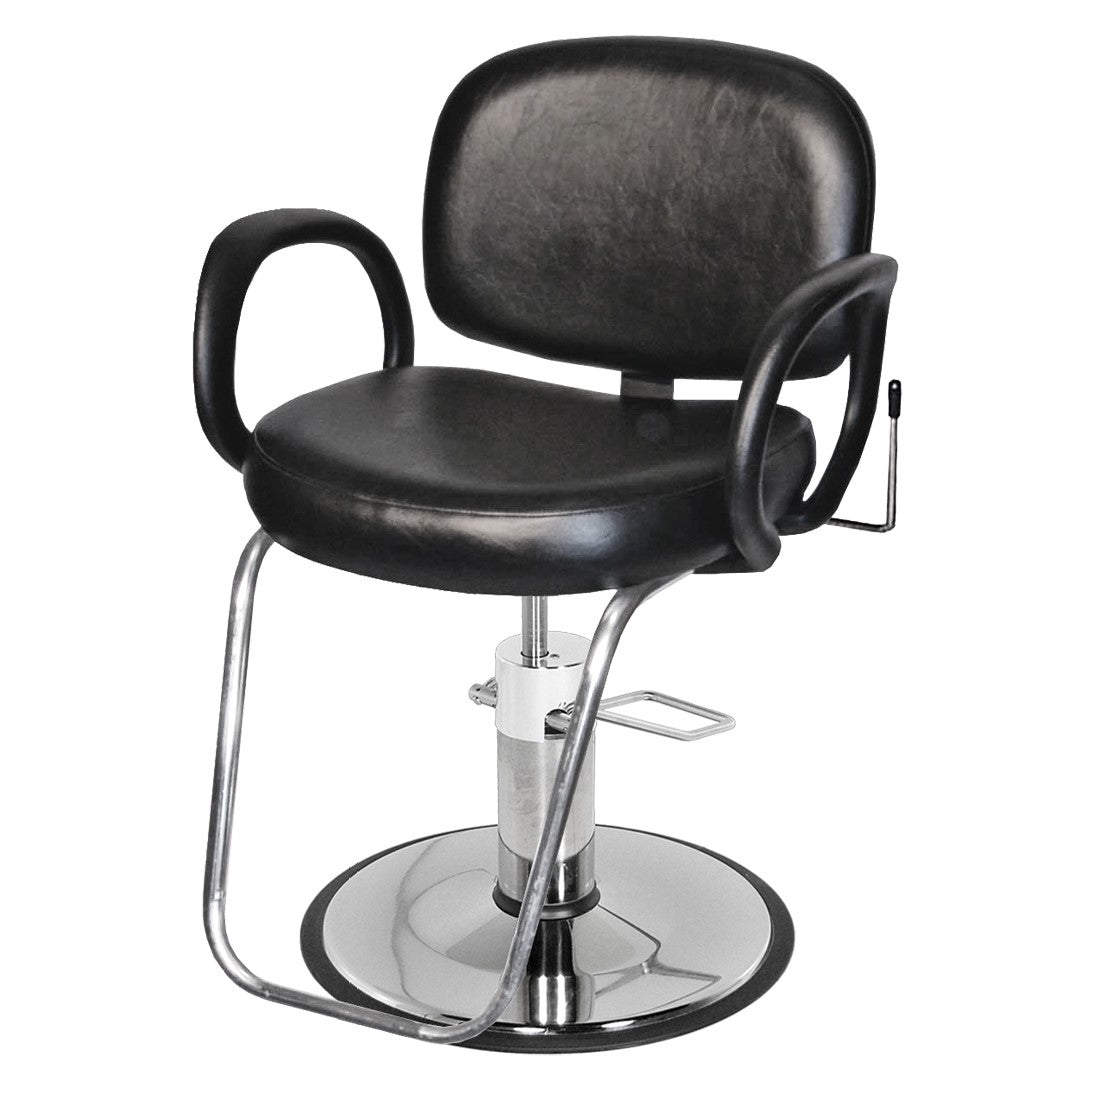 Kiva All-Purpose Chair - Collins